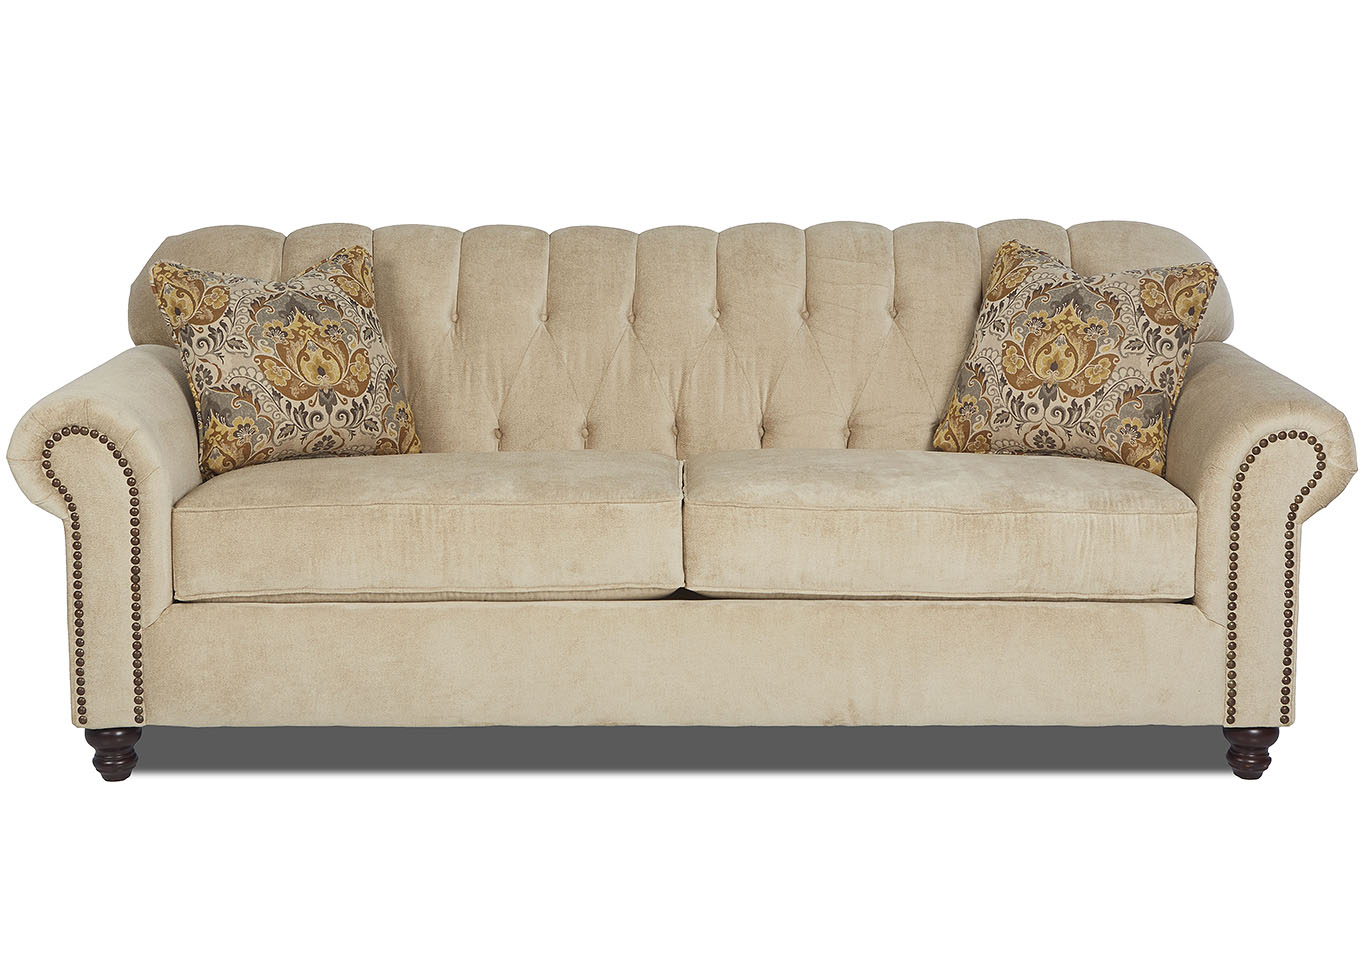 Sinclair Ecru Stationary Fabric Sofa,Klaussner Home Furnishings